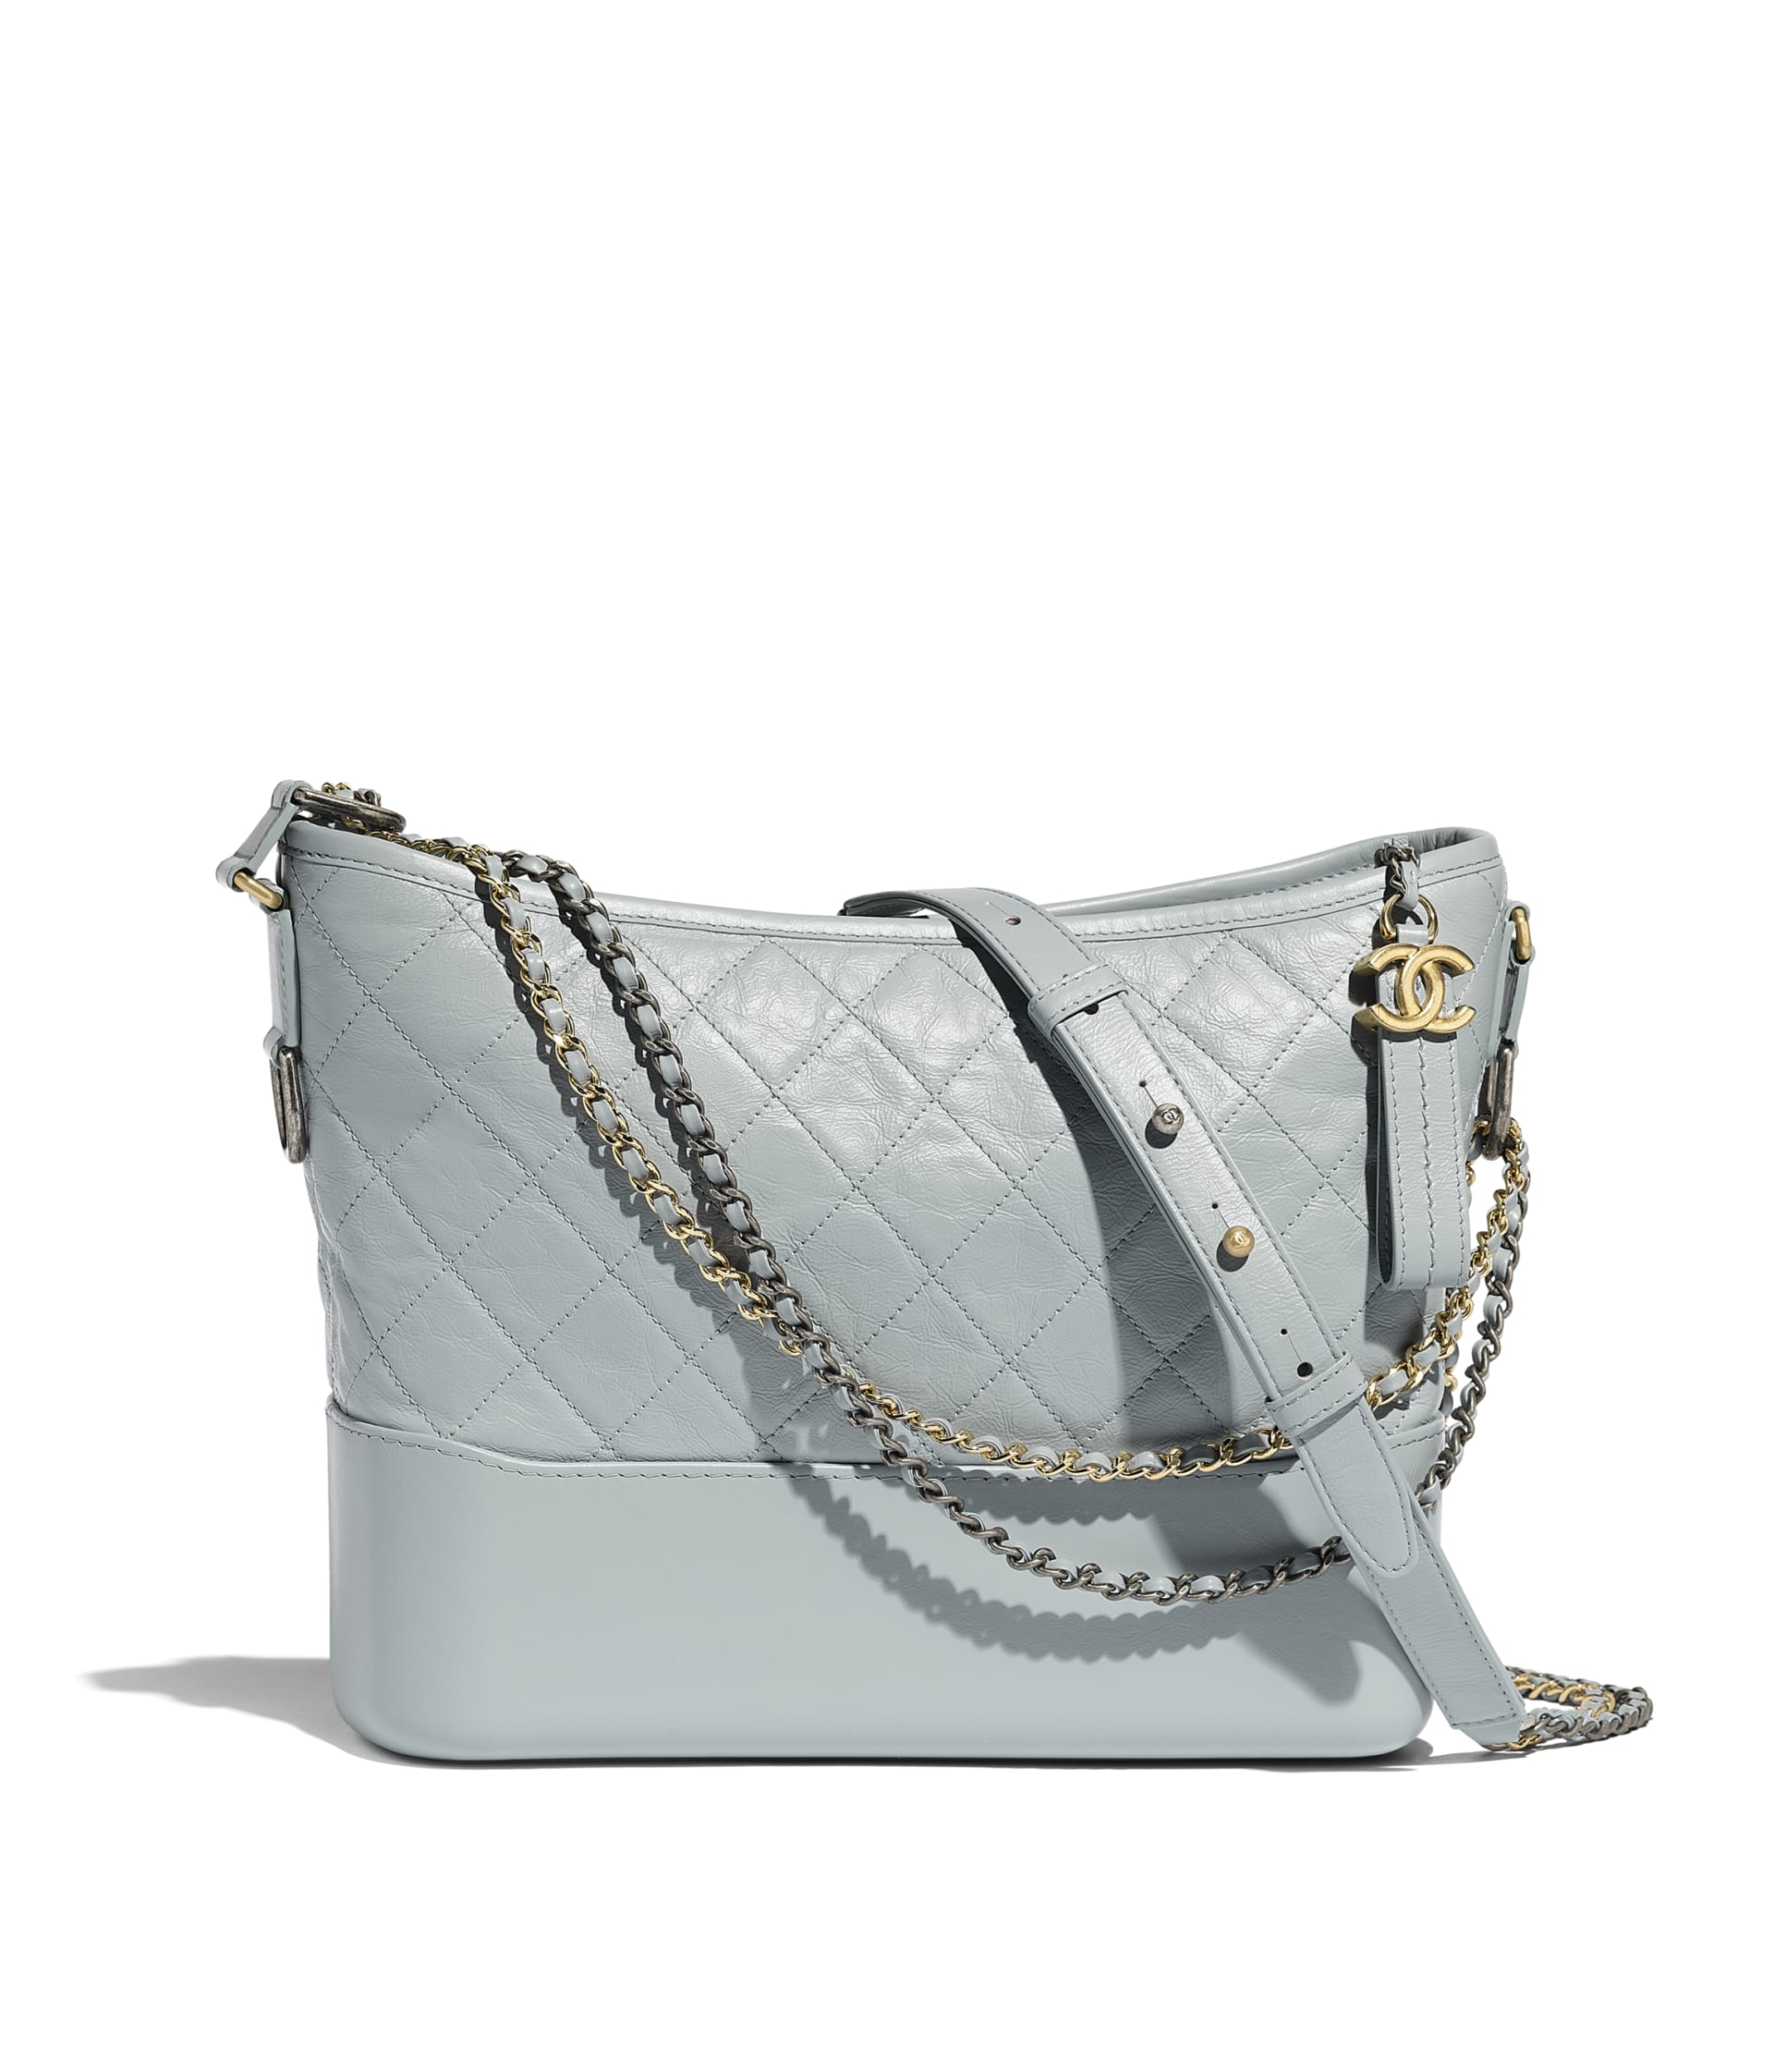 image 1 - CHANEL'S GABRIELLE  Large Hobo Bag - Aged Calfskin, Smooth Calfskin, Gold-Tone, Silver-Tone & Ruthenium-Finish Metal - Light Blue & Turquoise